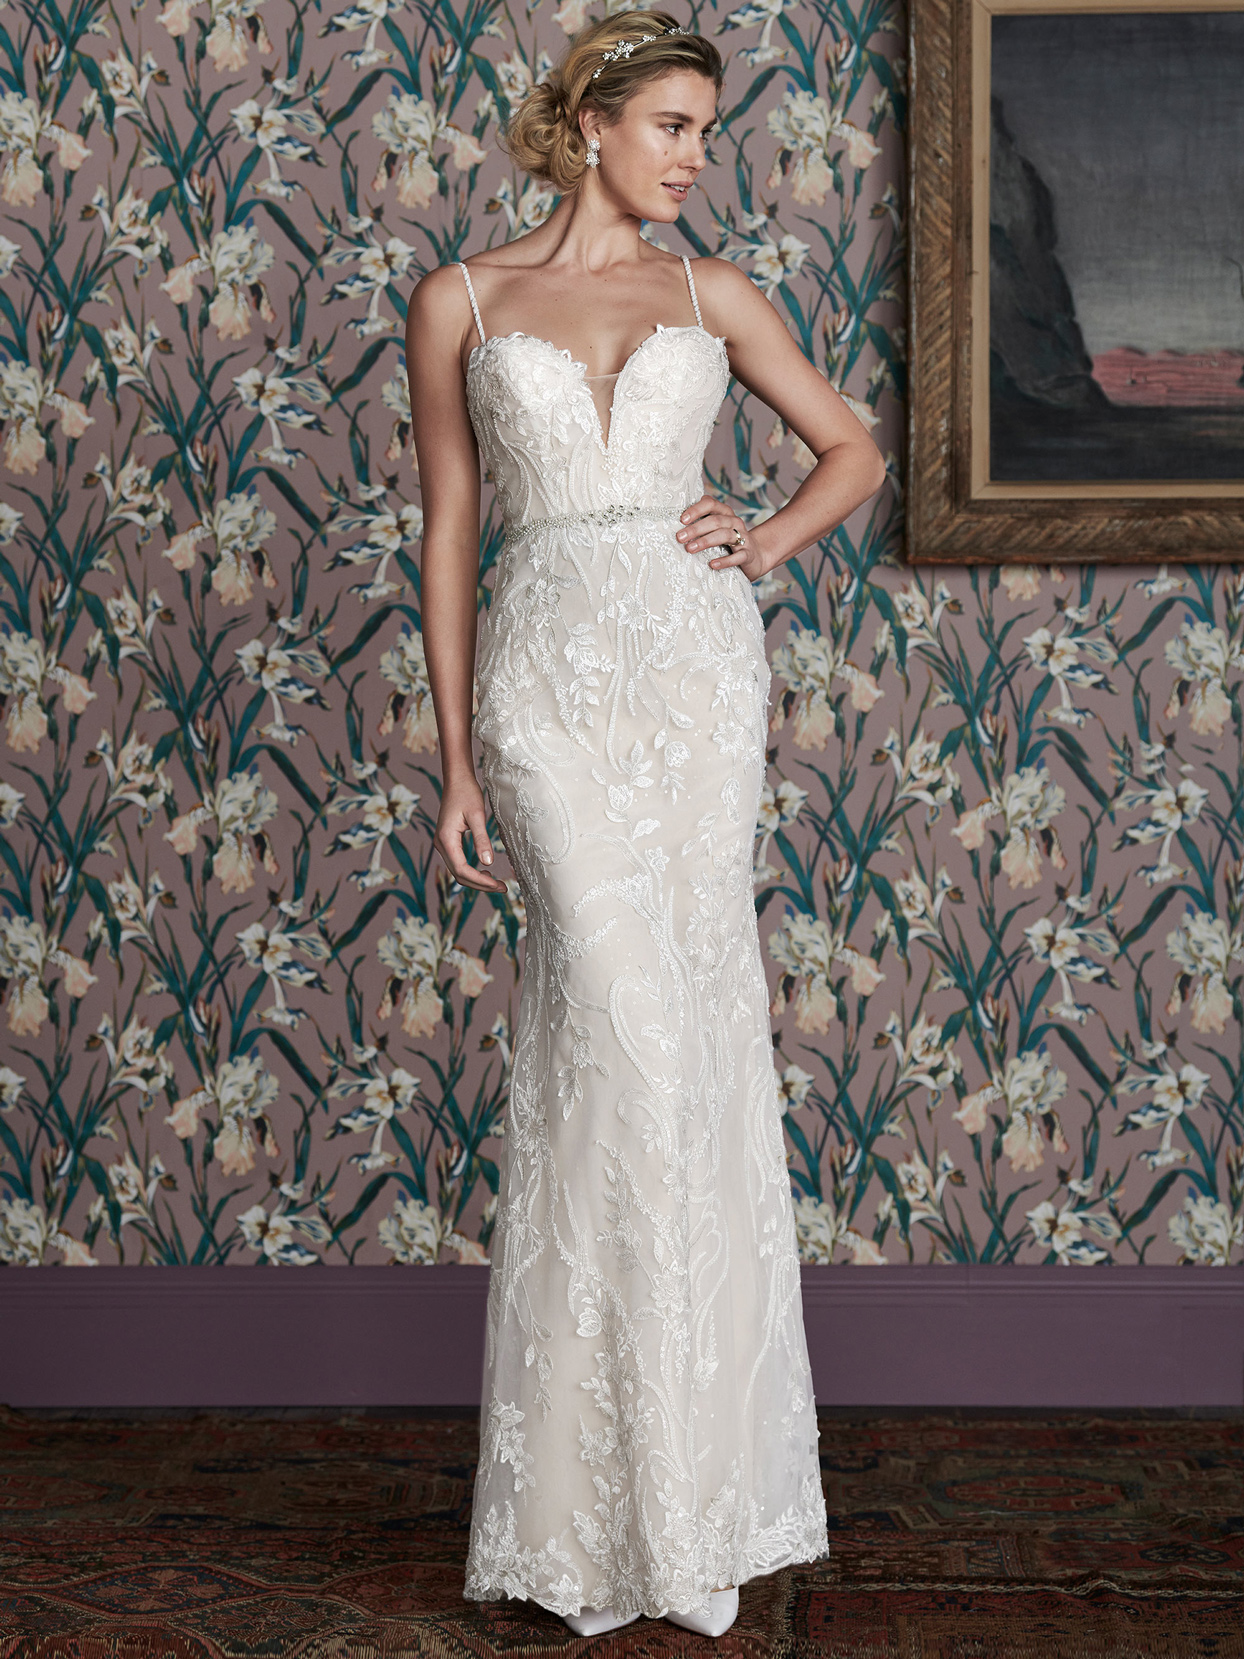 justin alexander fitted thin strap plunging v-neck lace wedding dress spring 2021